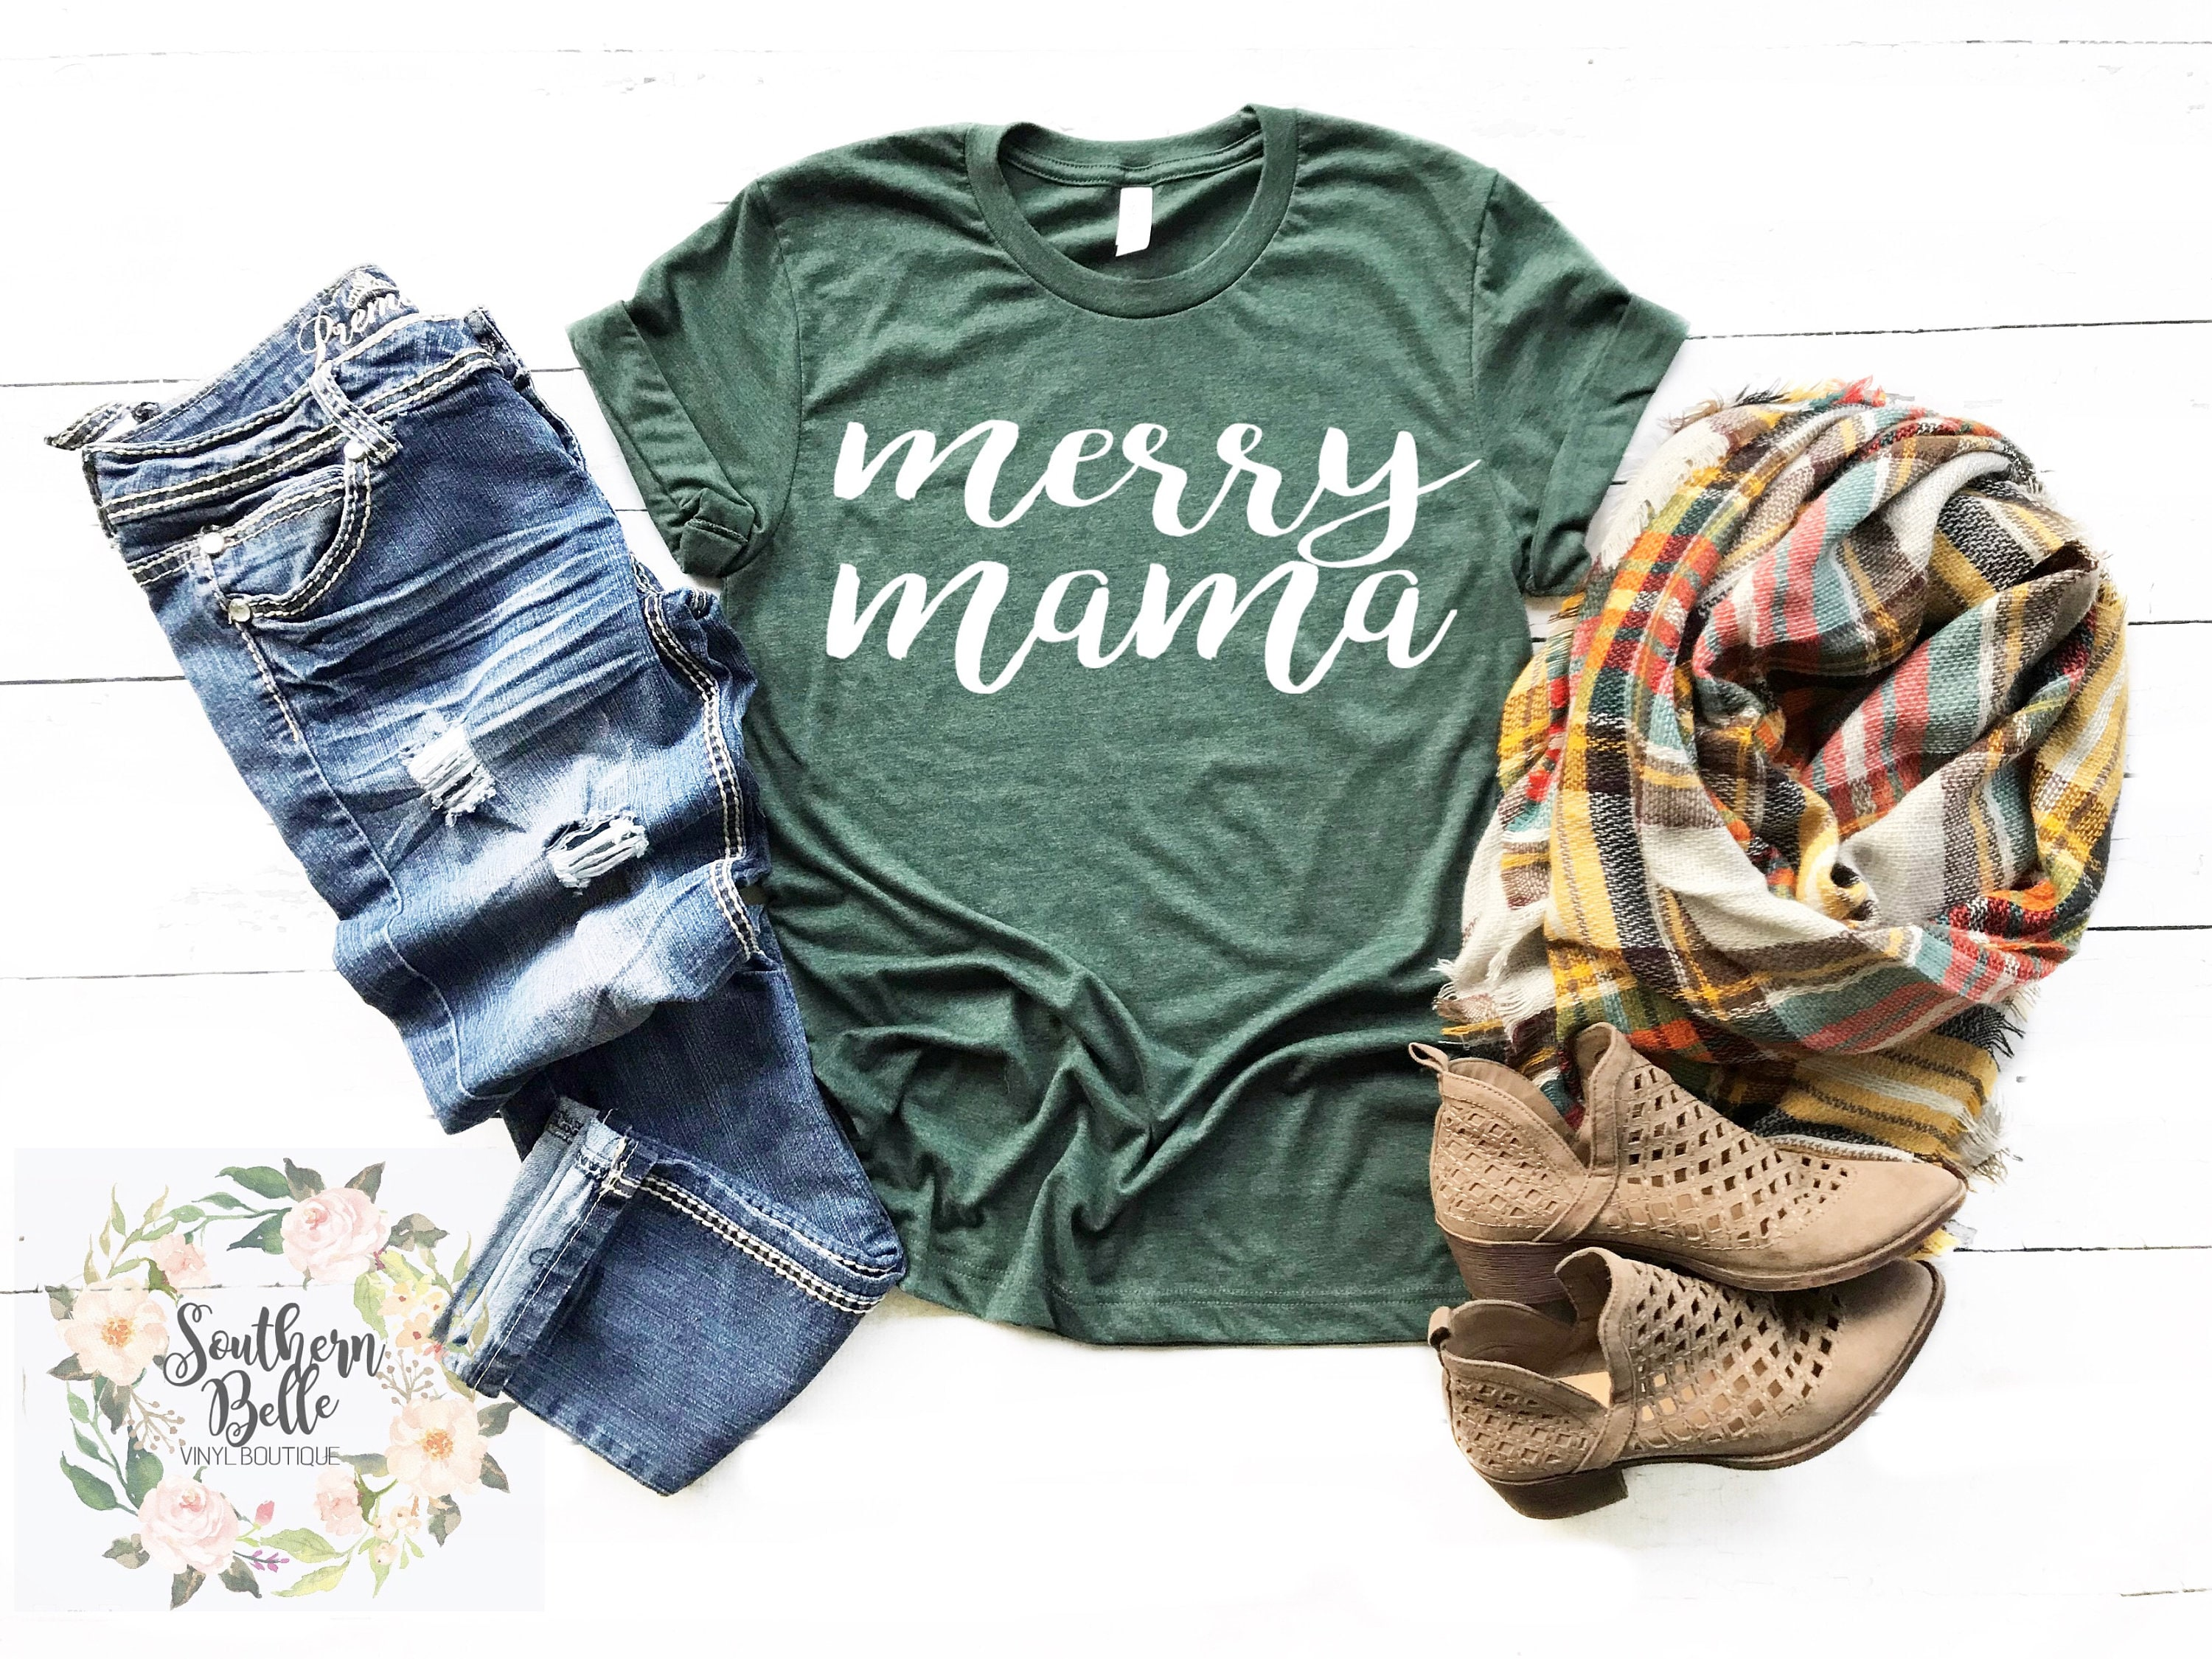 merry mama christmas shirt christmas tee mama shirt unisex shirt christmas graphic tee womens clothing womens tops